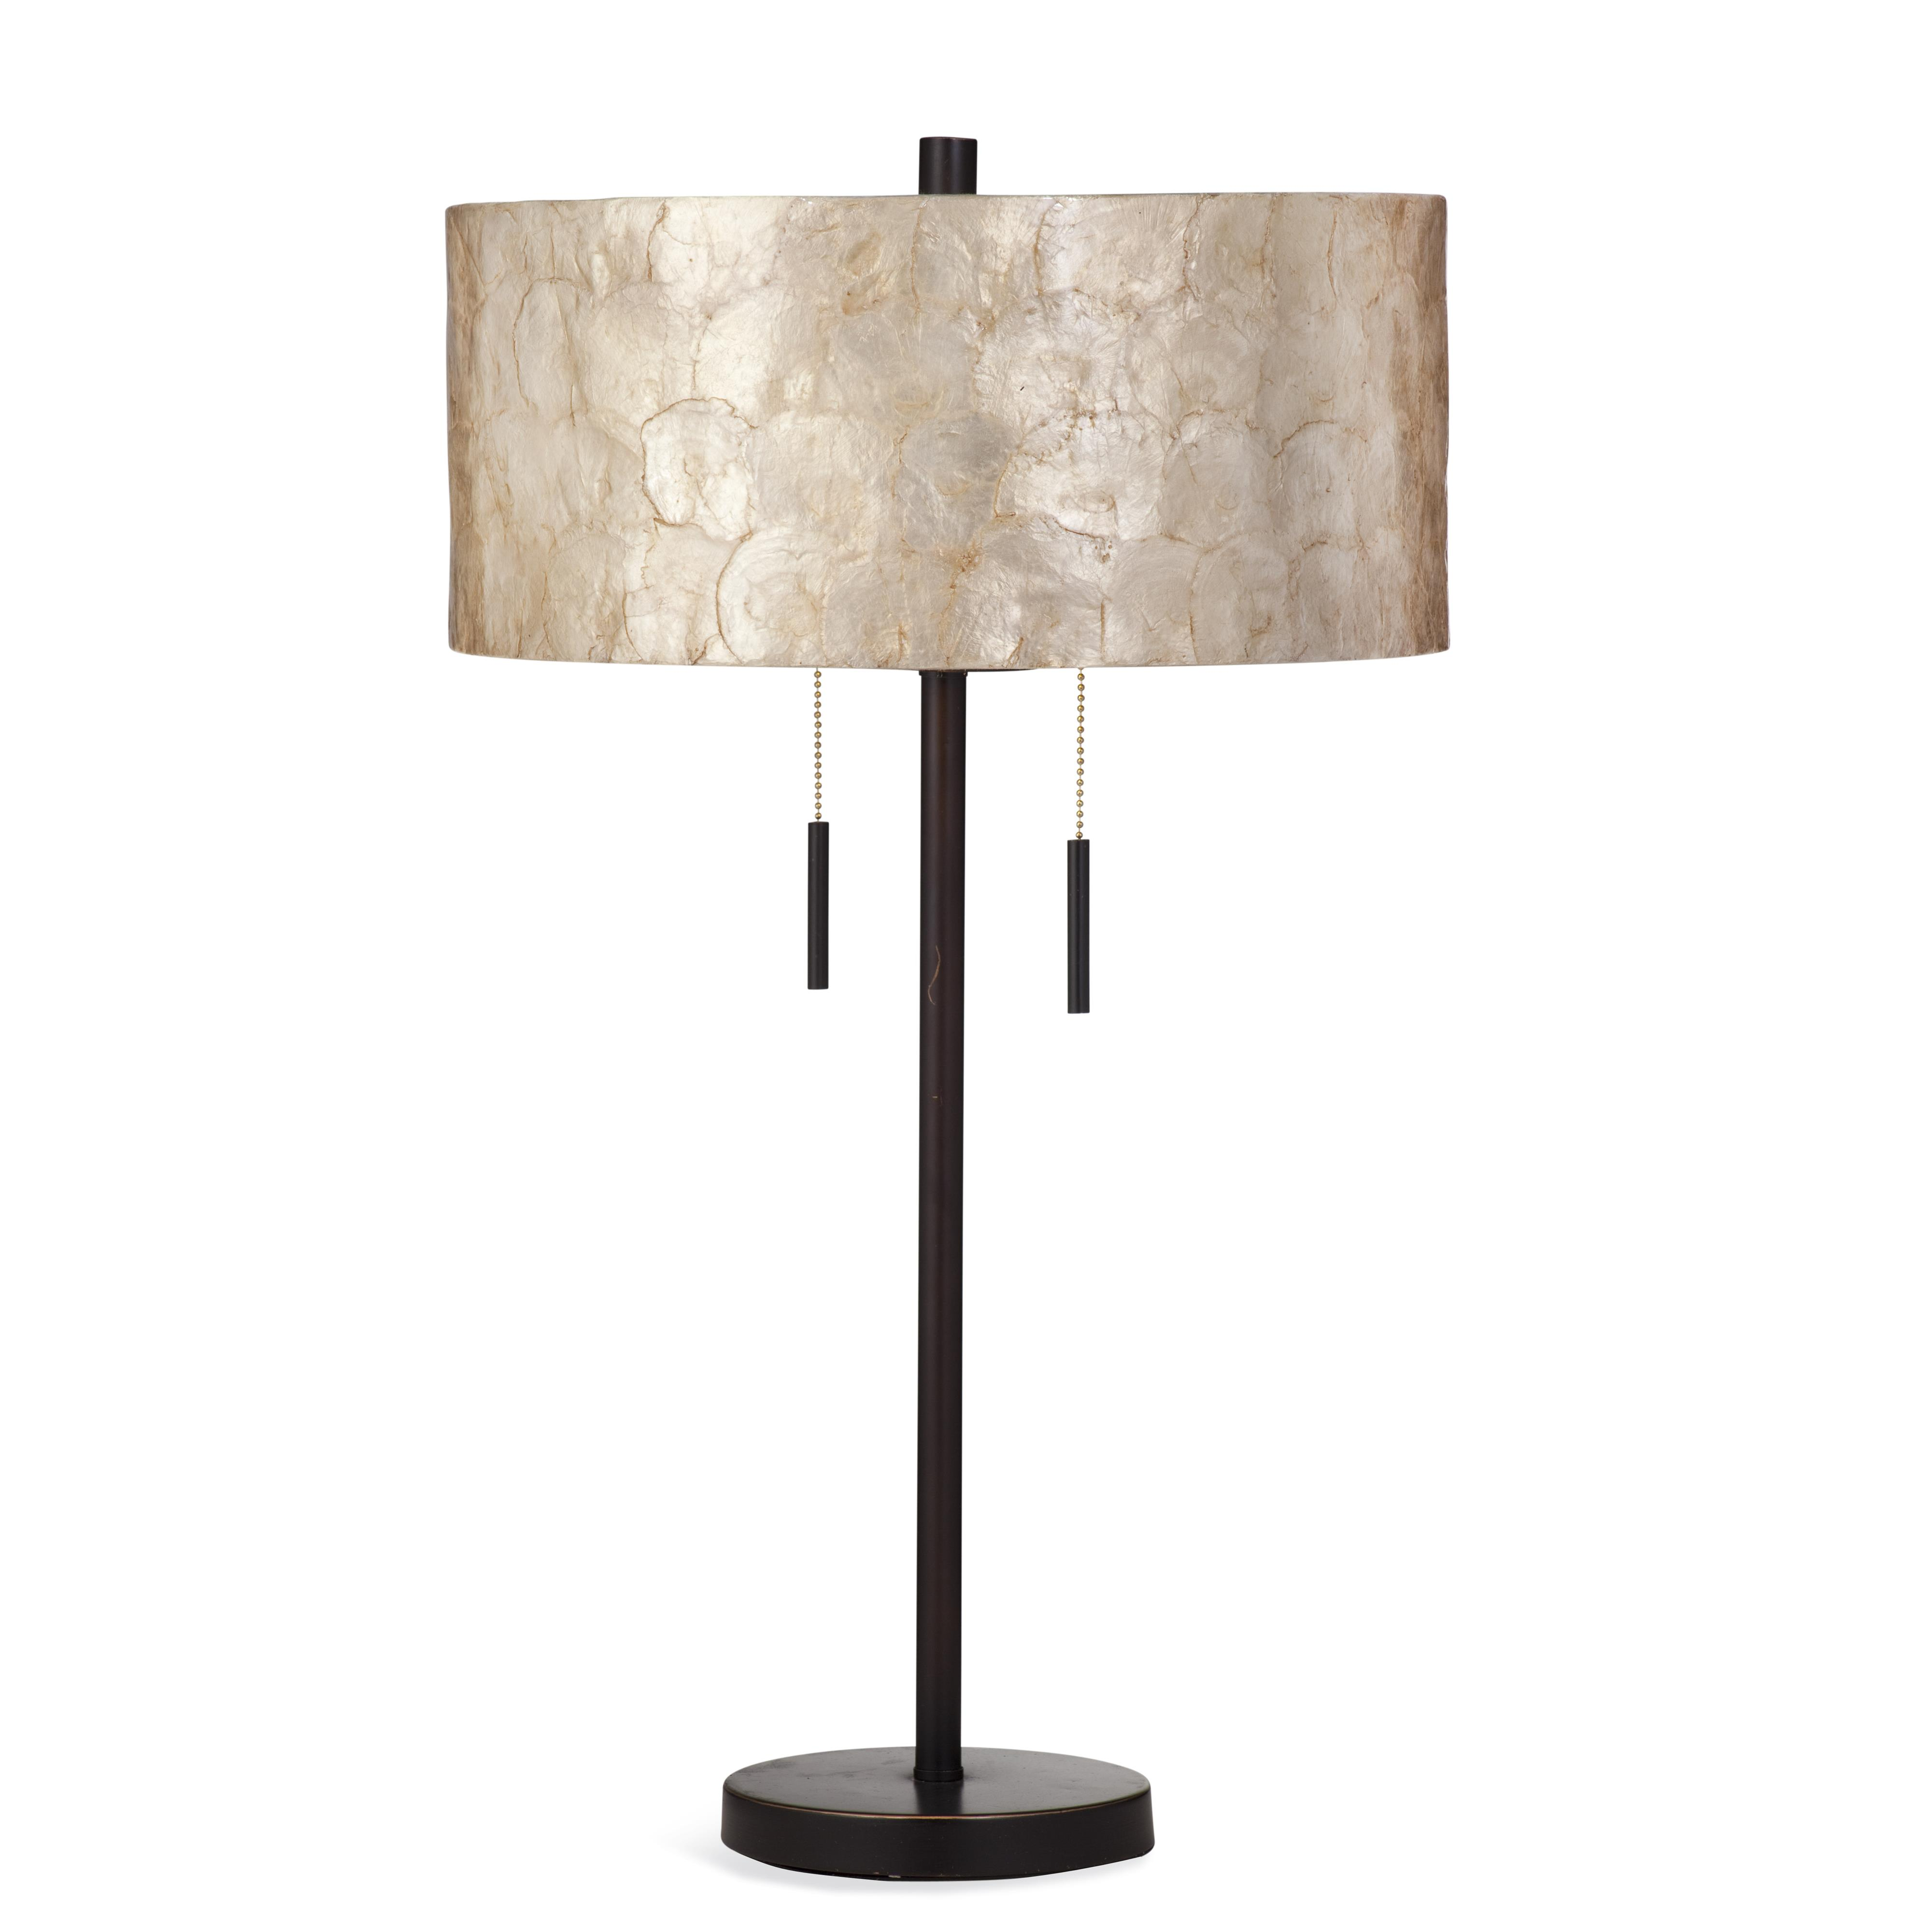 Belgian Luxe Alton Table Lamp by Bassett Mirror at Alison Craig Home Furnishings